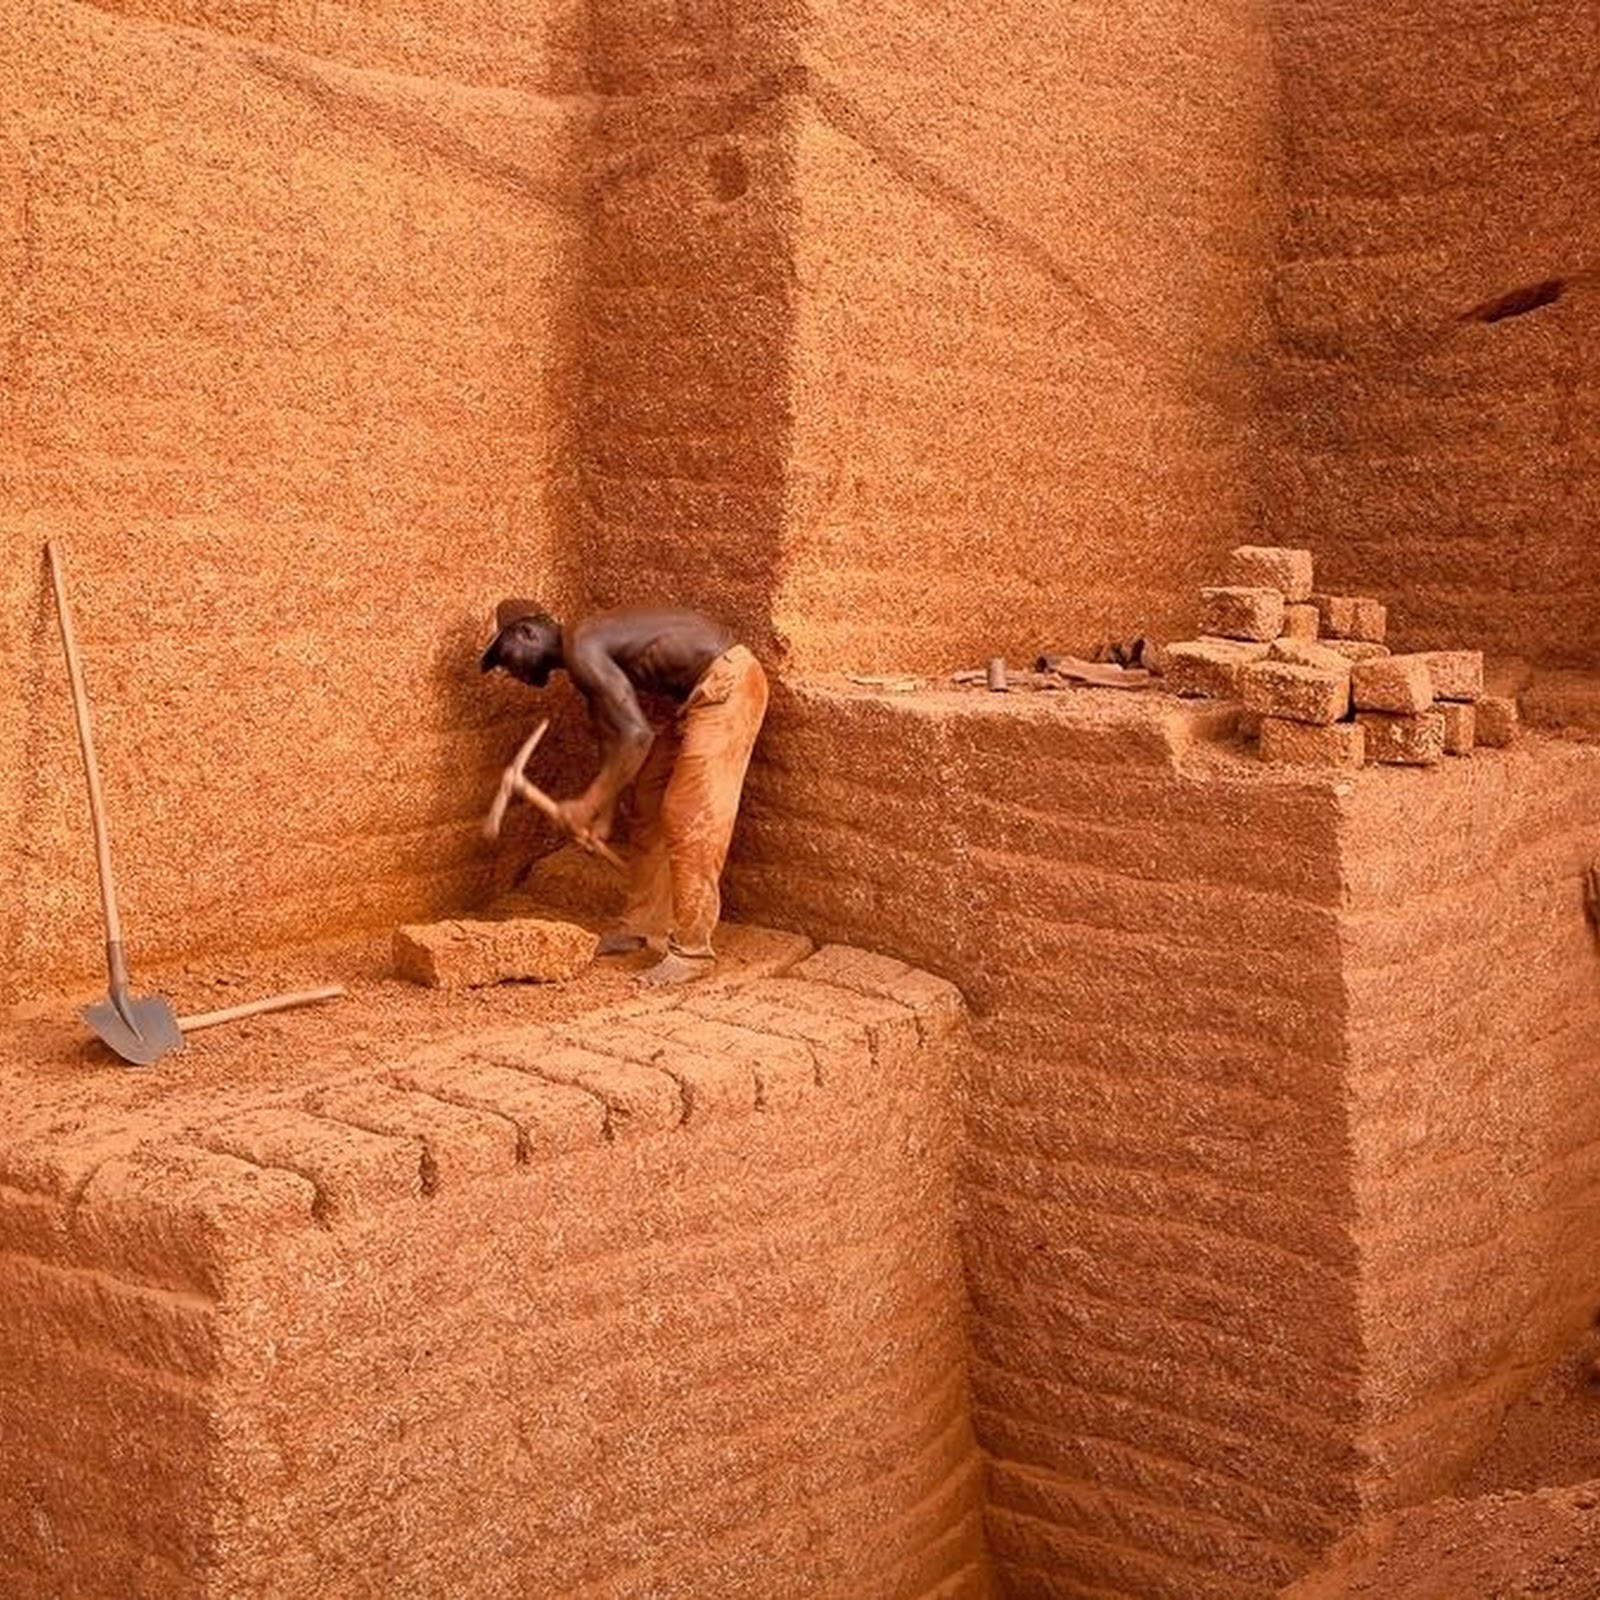 Karaba Brick Quarry of Burkina Faso